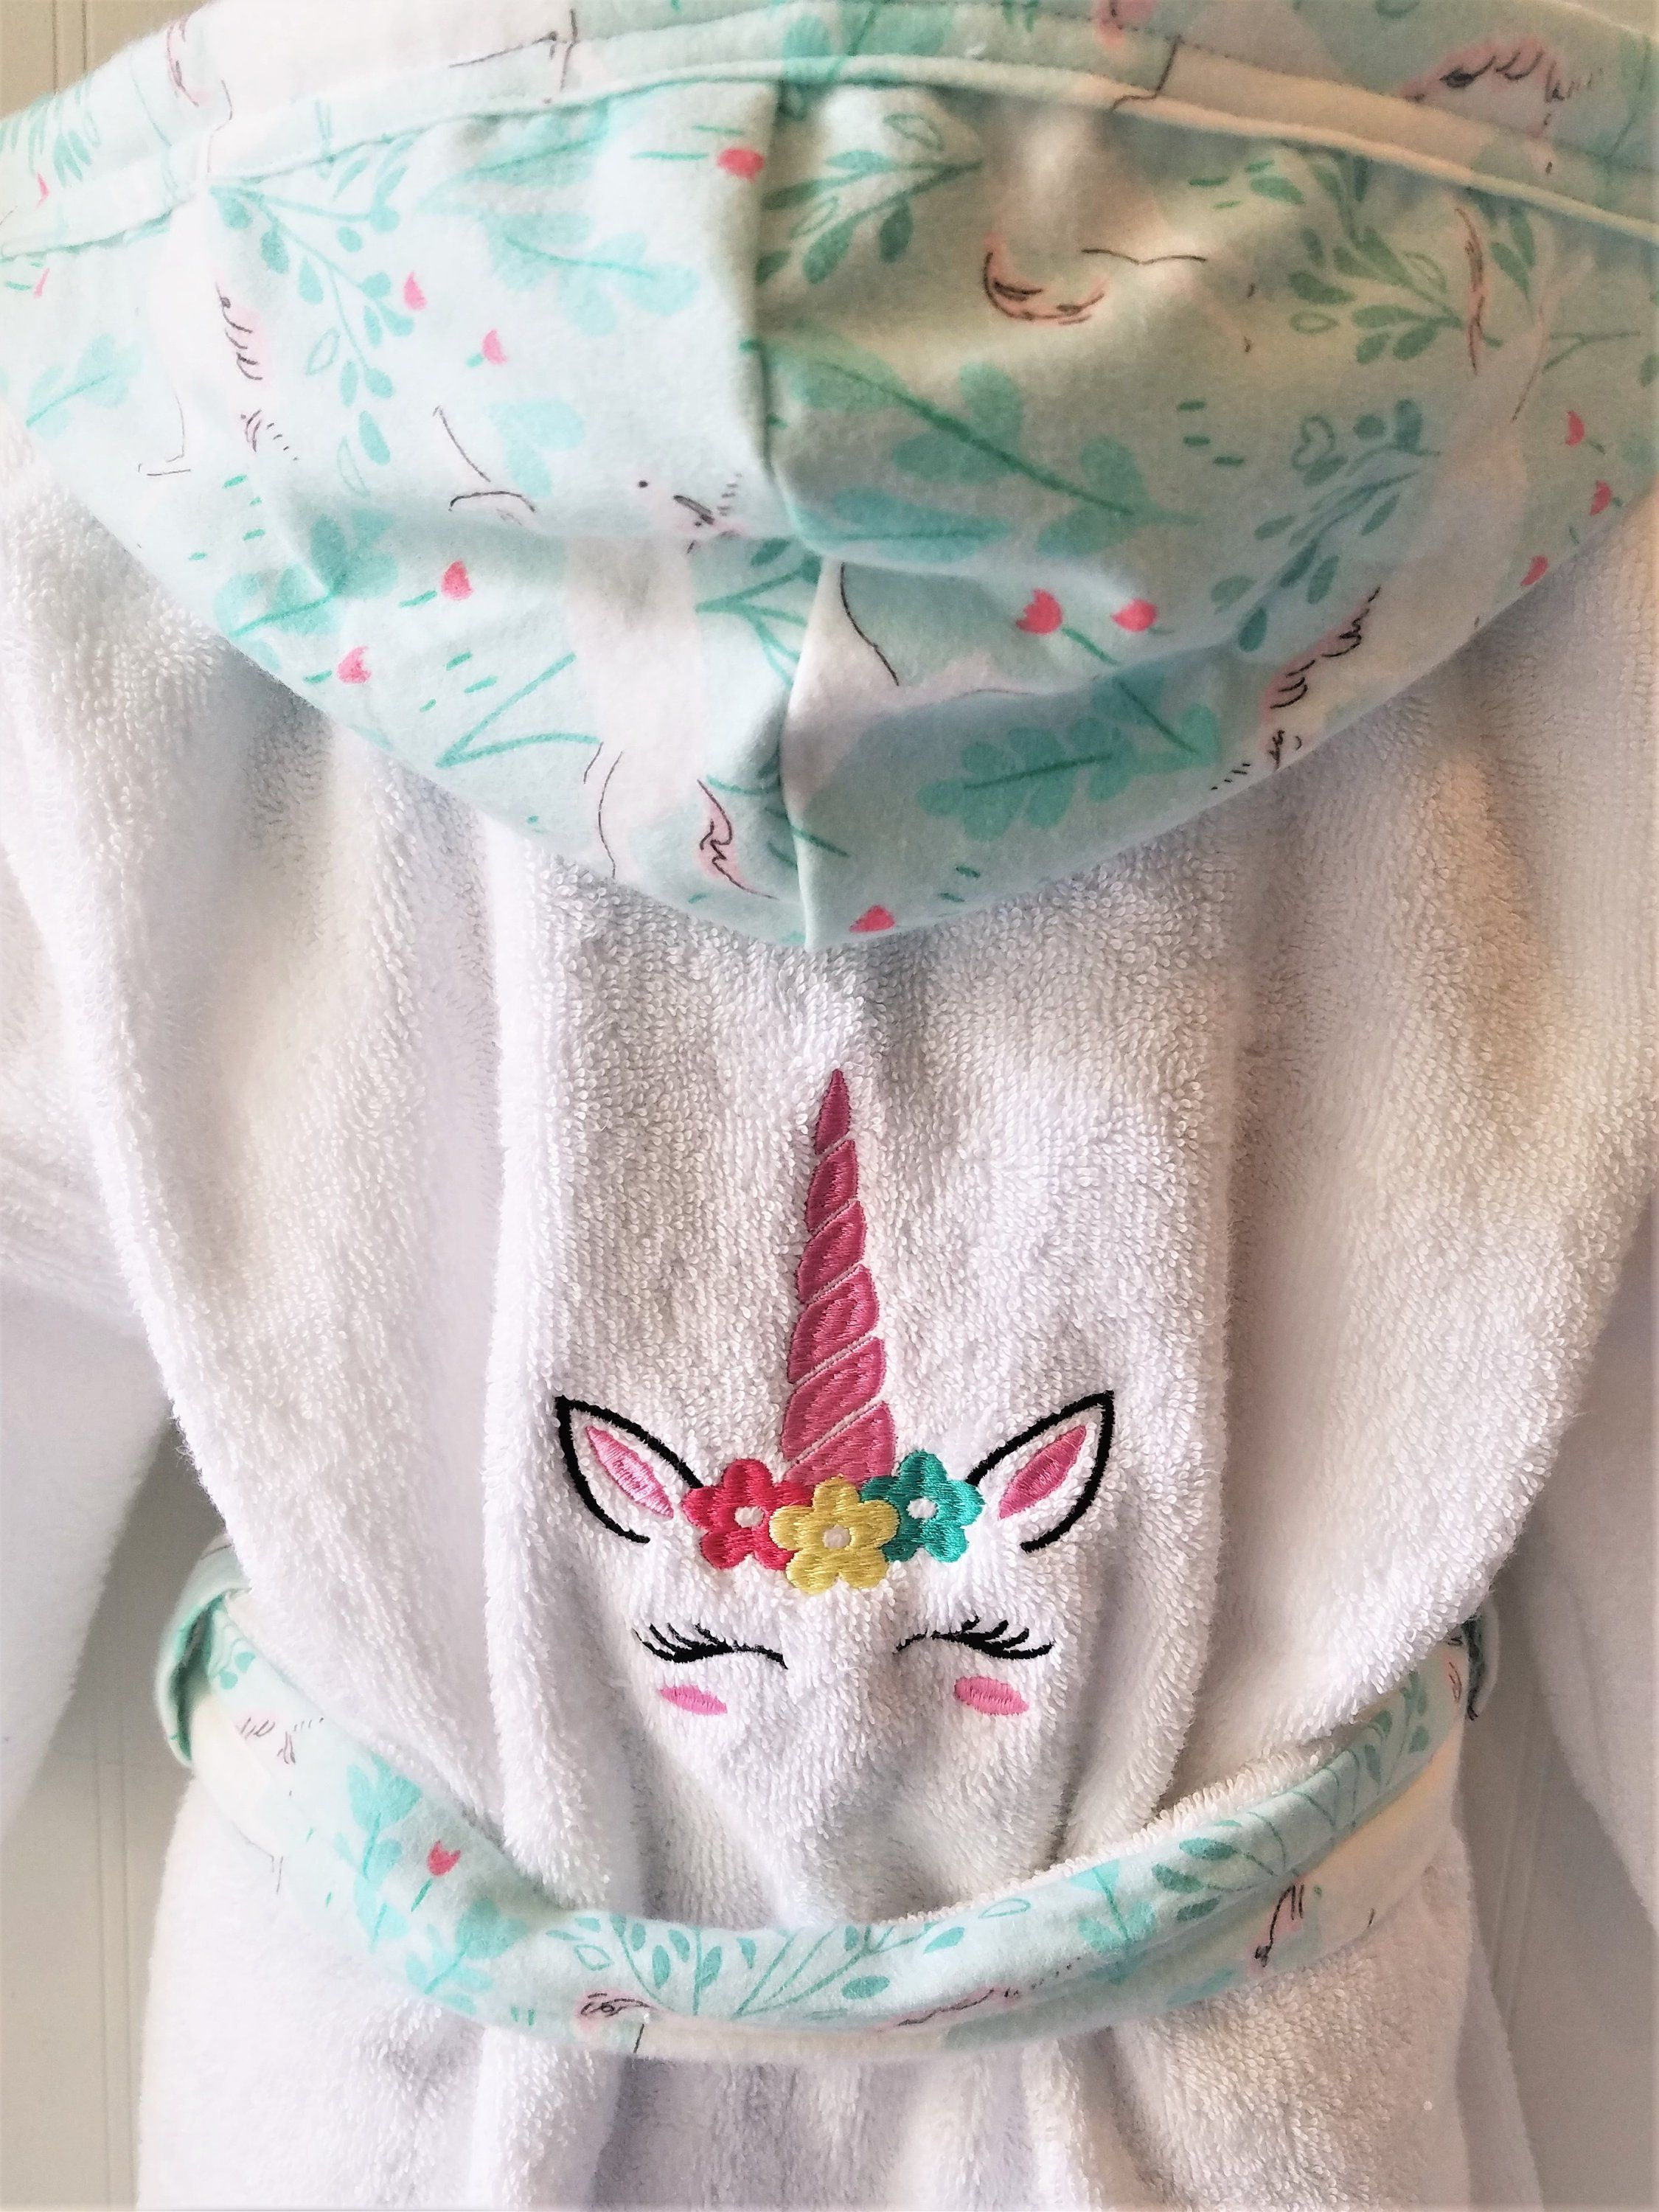 Personalized-Girls-Bath-Robes-Bathrobes-Pink-Unicorn -Child-Beach-Hooded -Towels-Swimwear-Terry-Beach-Cover-Up-Baby-Toddler-Kids-Teen-Gift by tanjadlyn  on ... 591e496af